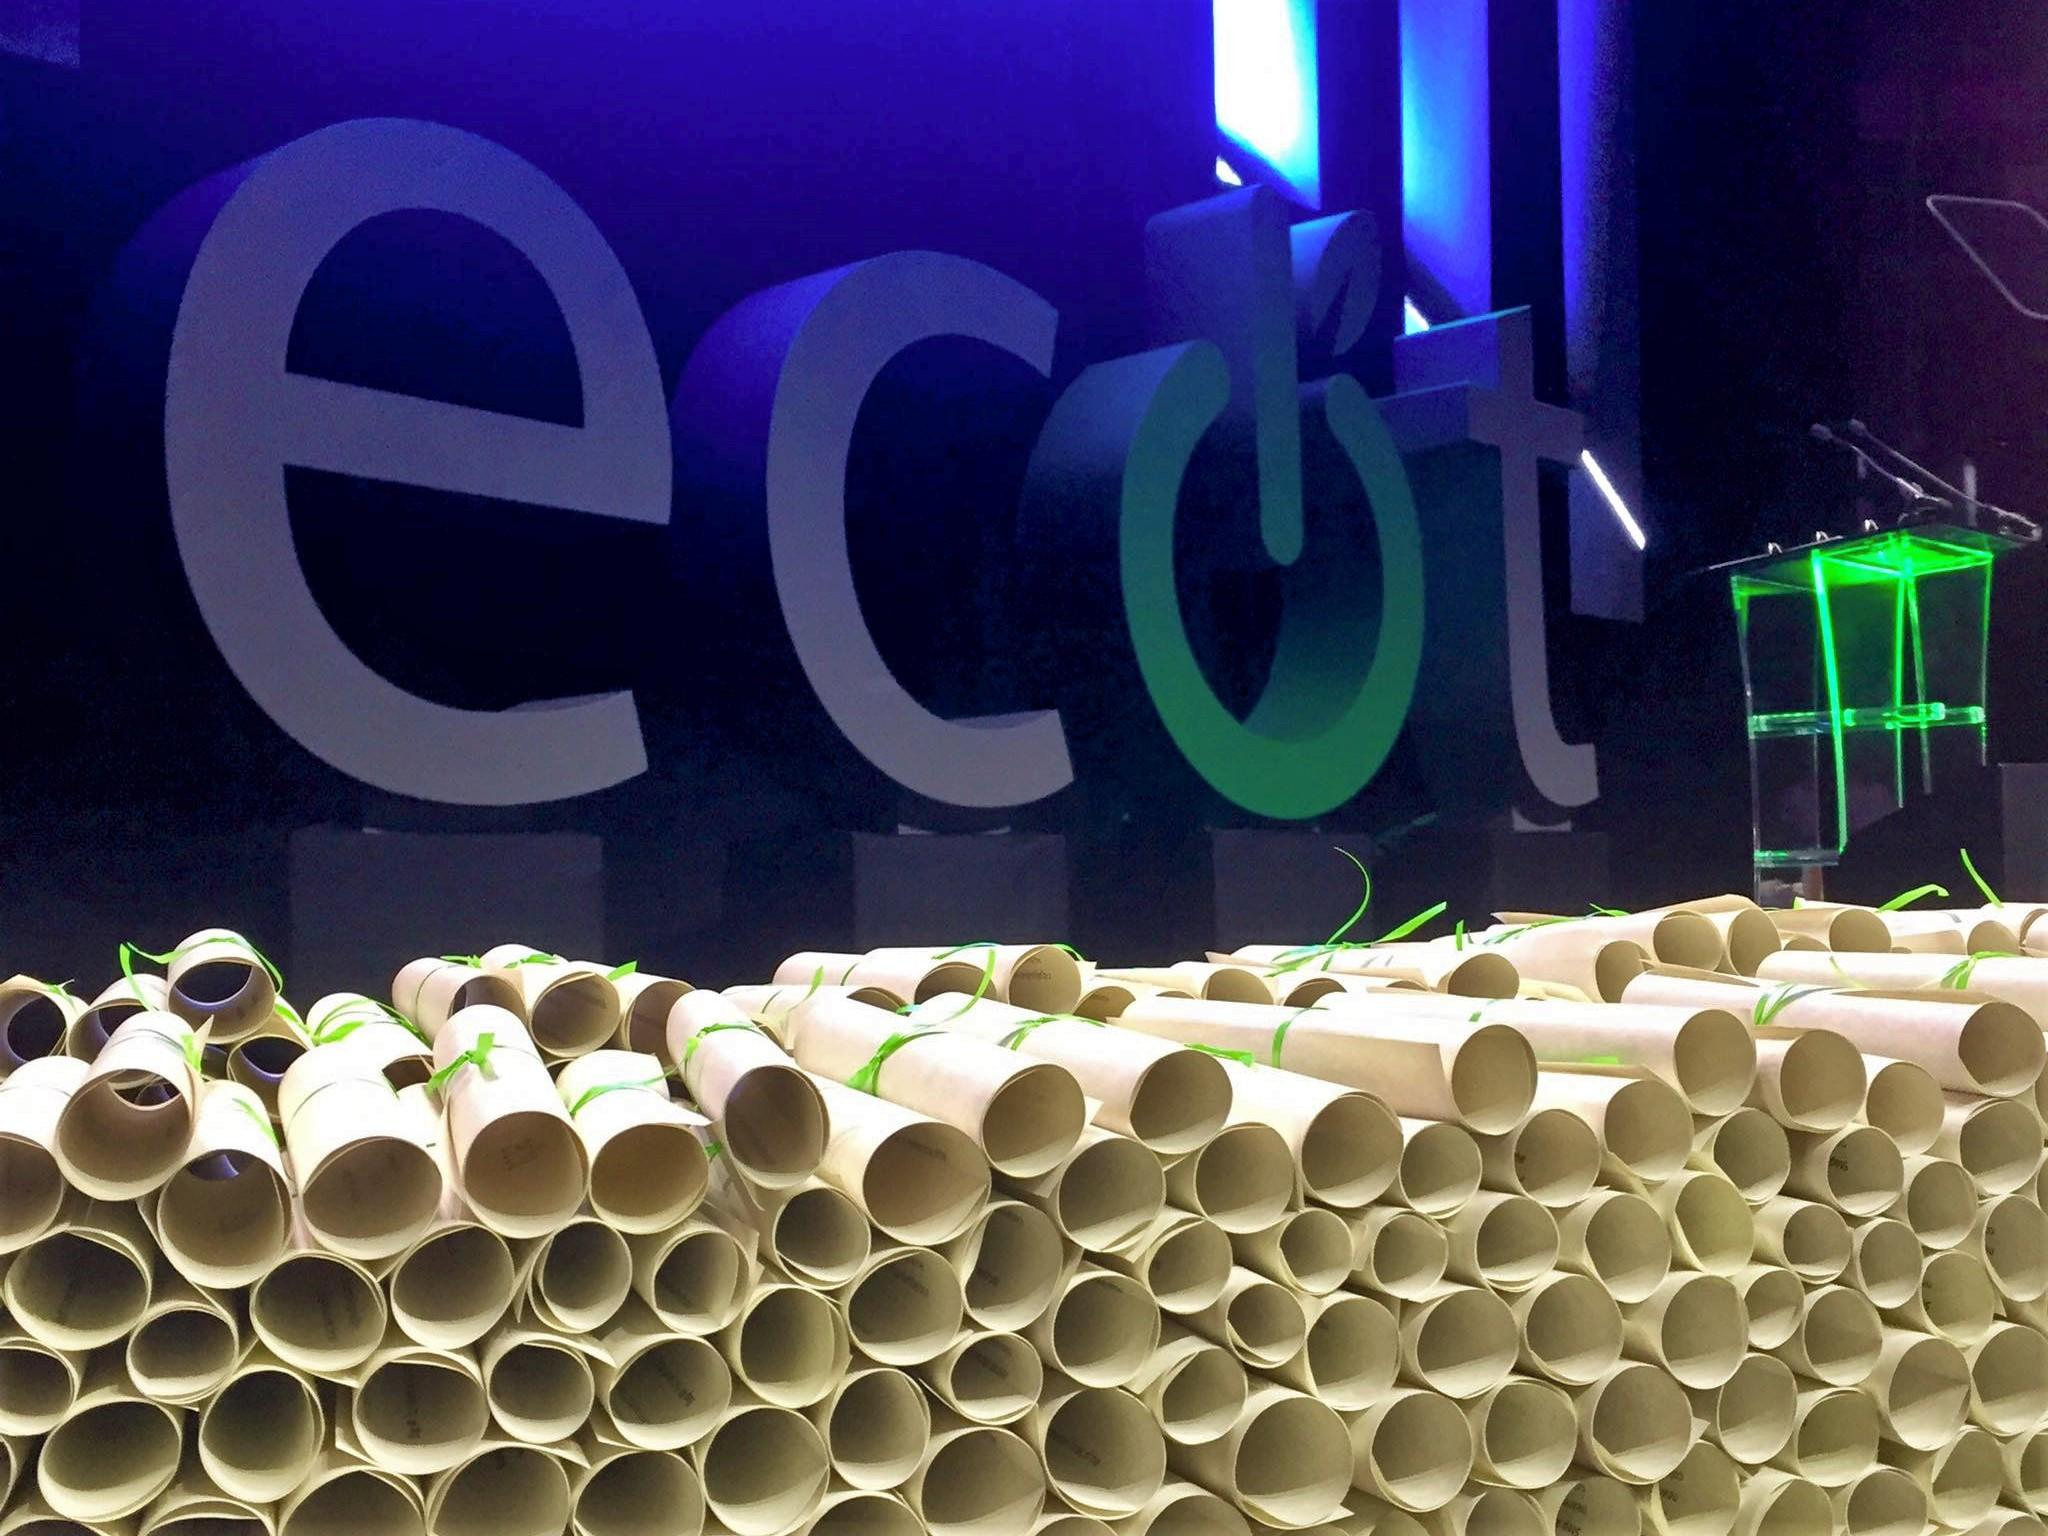 State may seek $19M more from ECOT